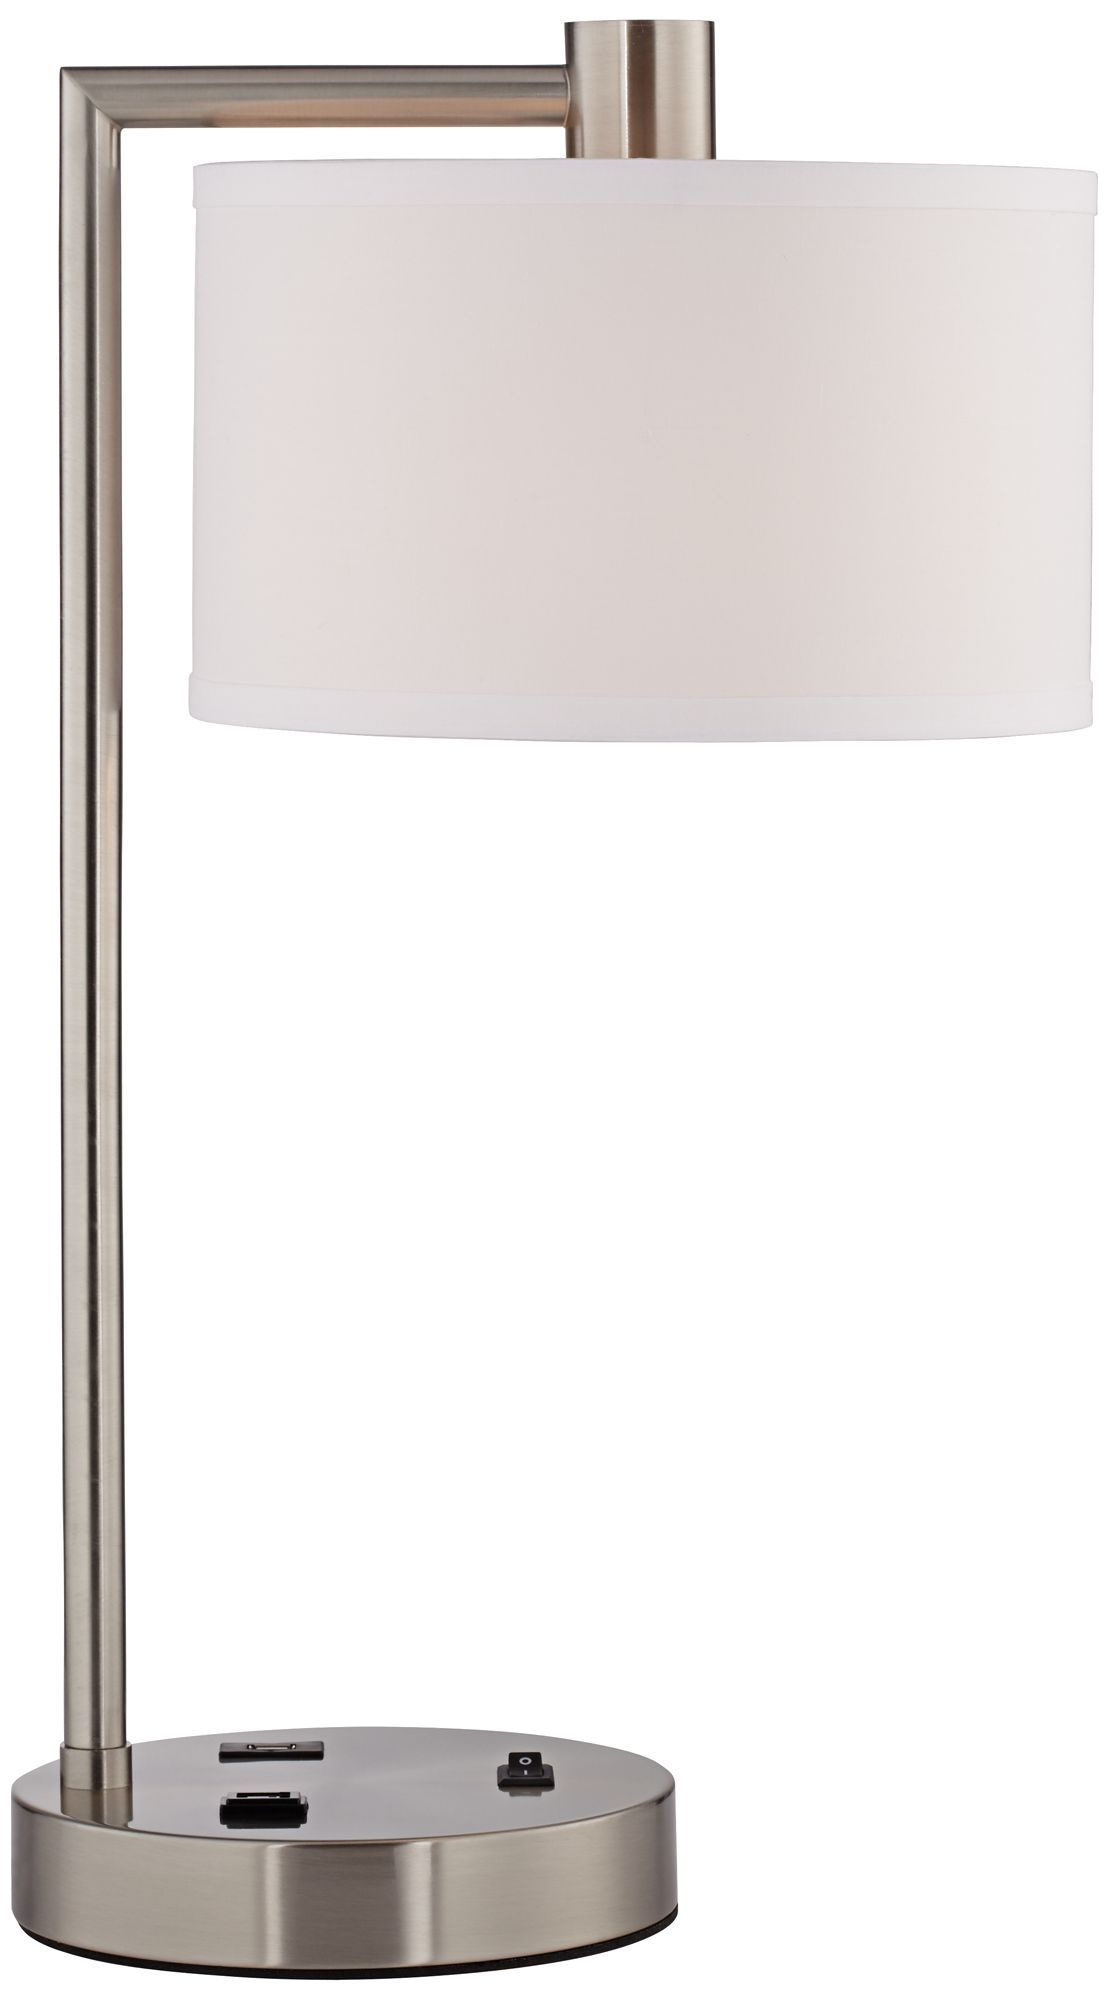 Colby Nickel 23-Inch-H Desk Lamp with Outlet and USB Port - #EU8N535 - Euro Style Lighting